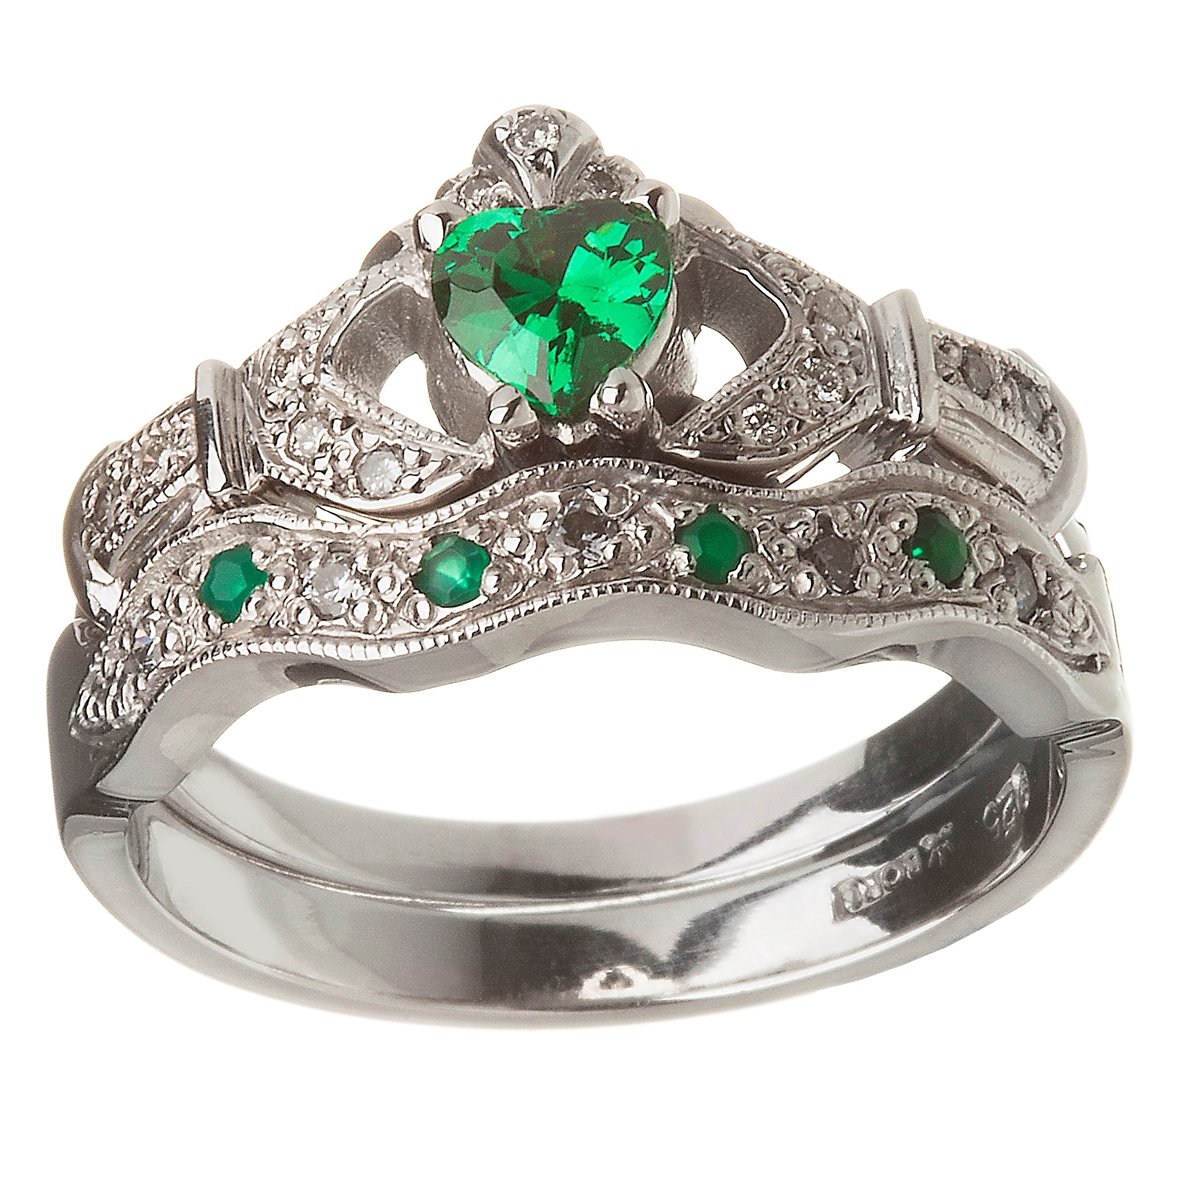 14k White Gold Emerald Set Heart Claddagh Ring Wedding Ring Set